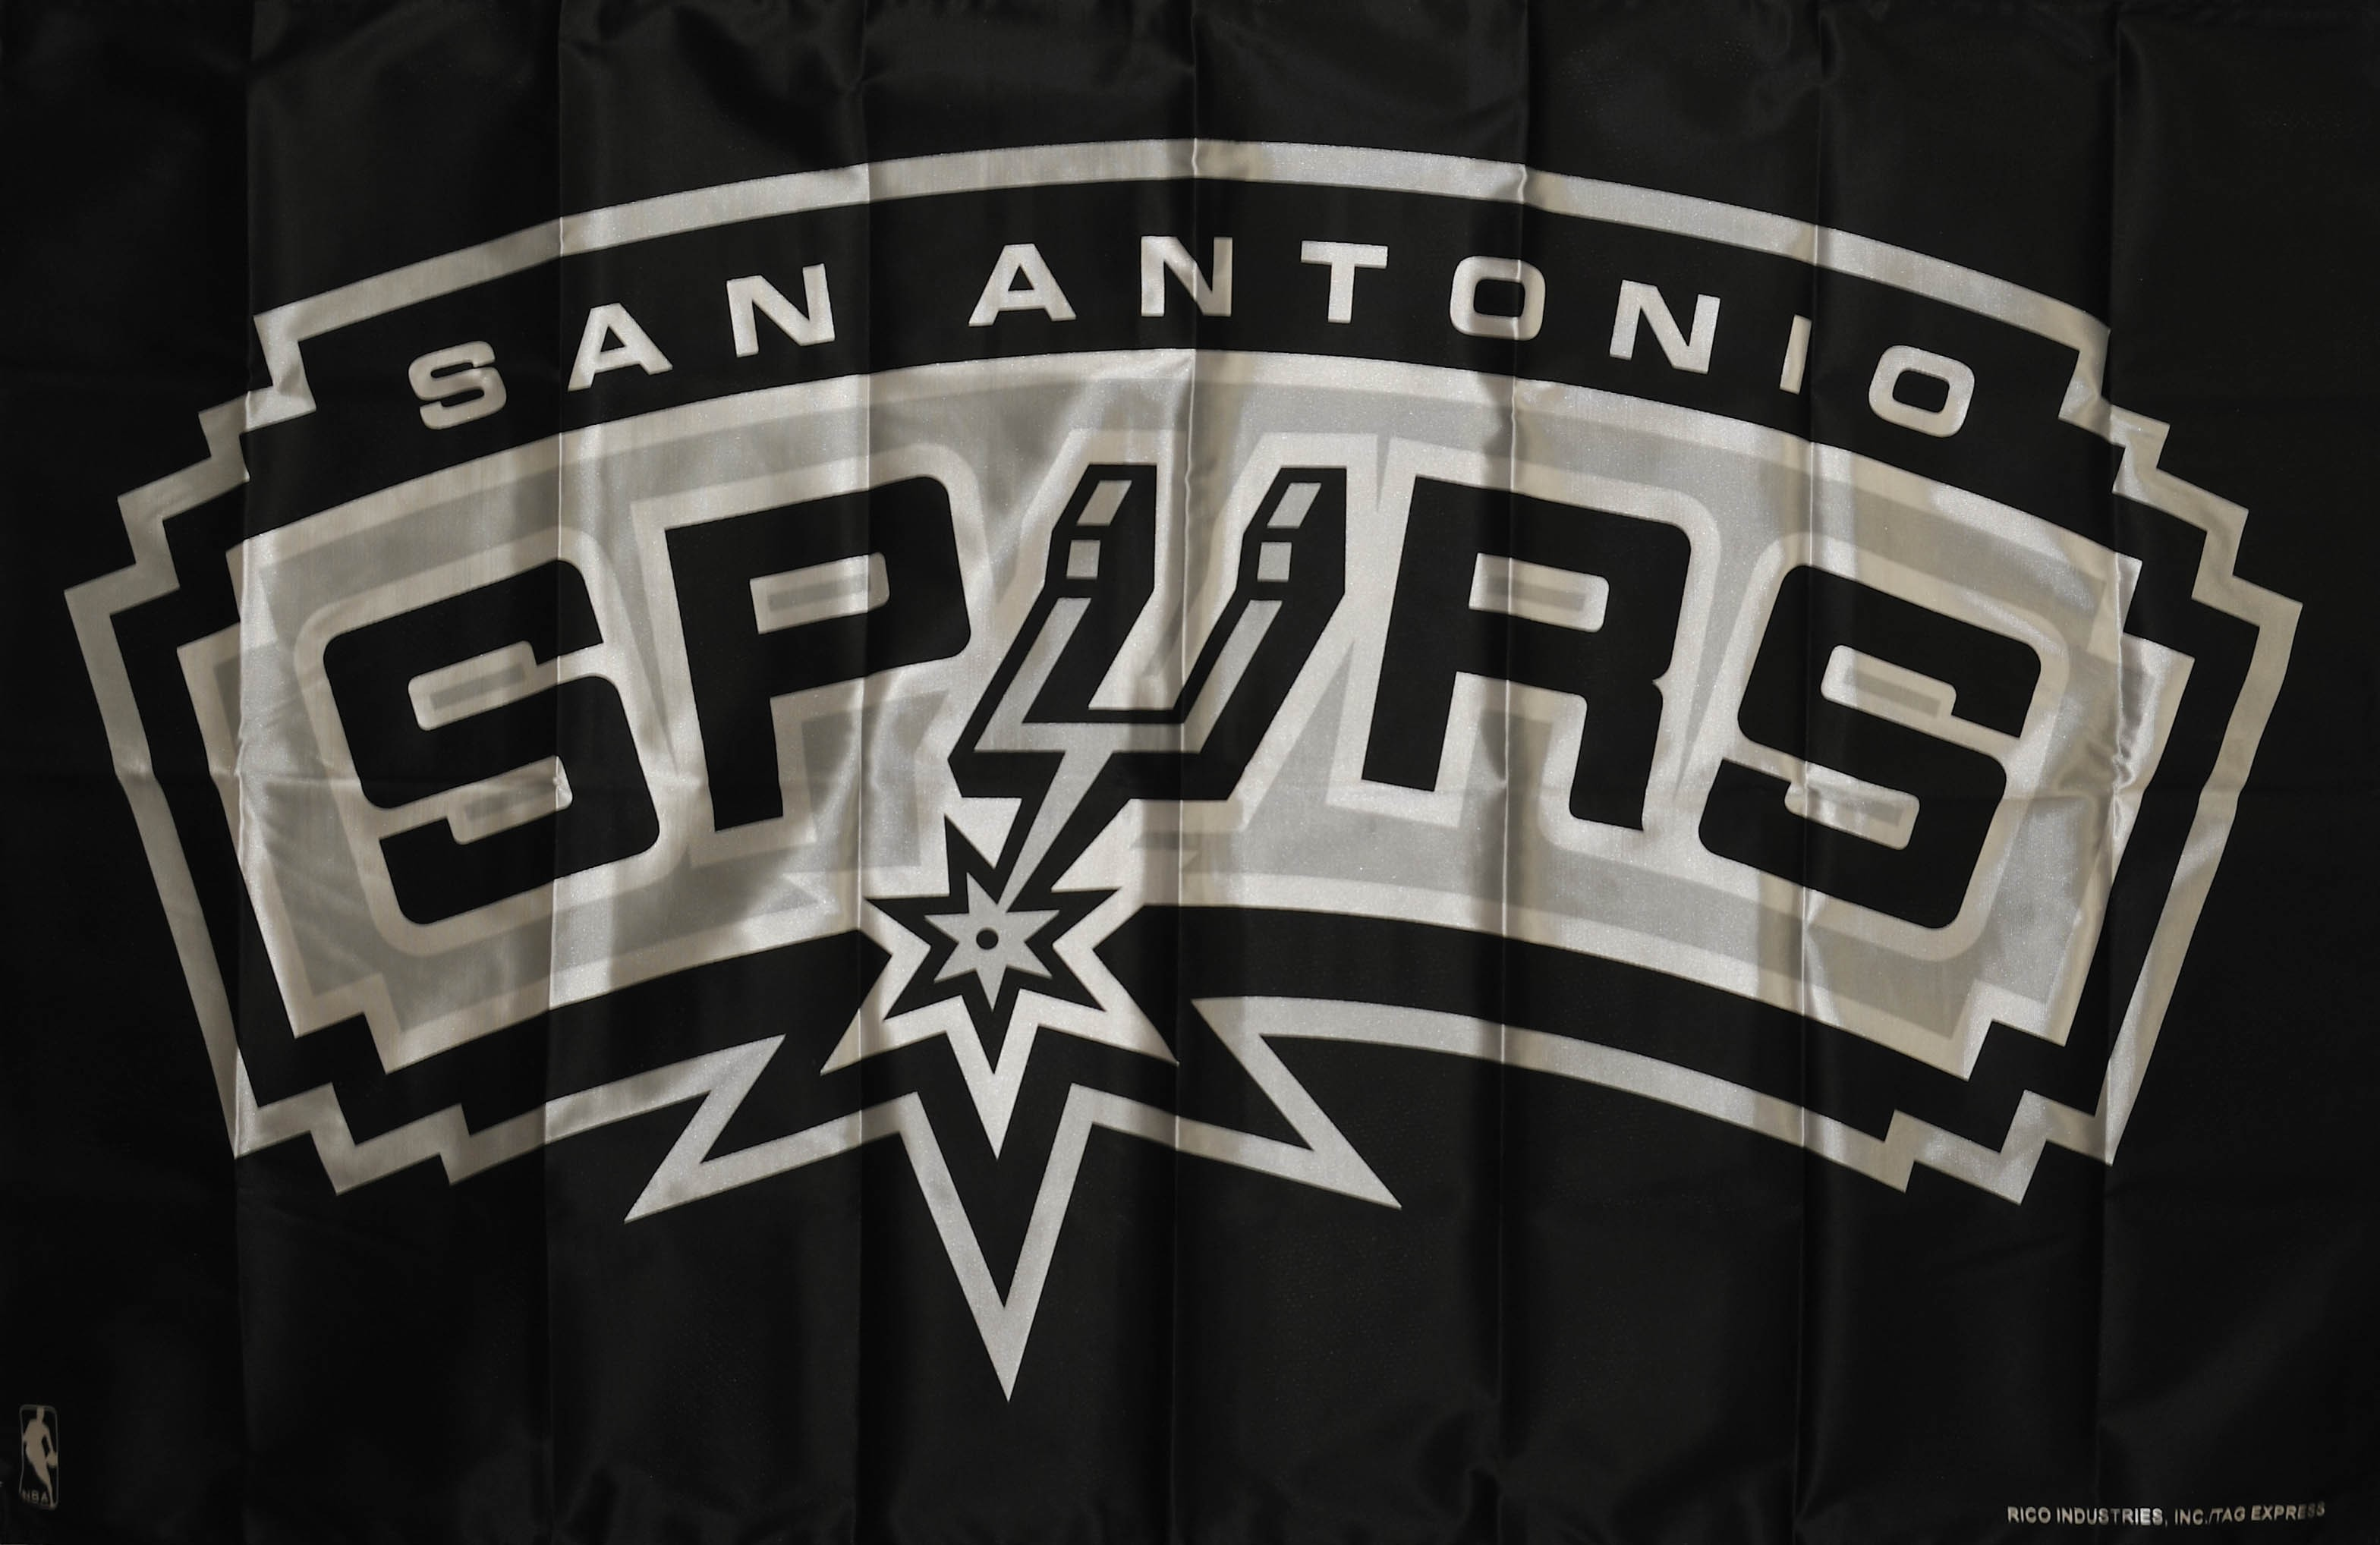 Spurs Wallpaper For Android Wallpaper Desktop 30 Full Wallpaperiz 3136x2036